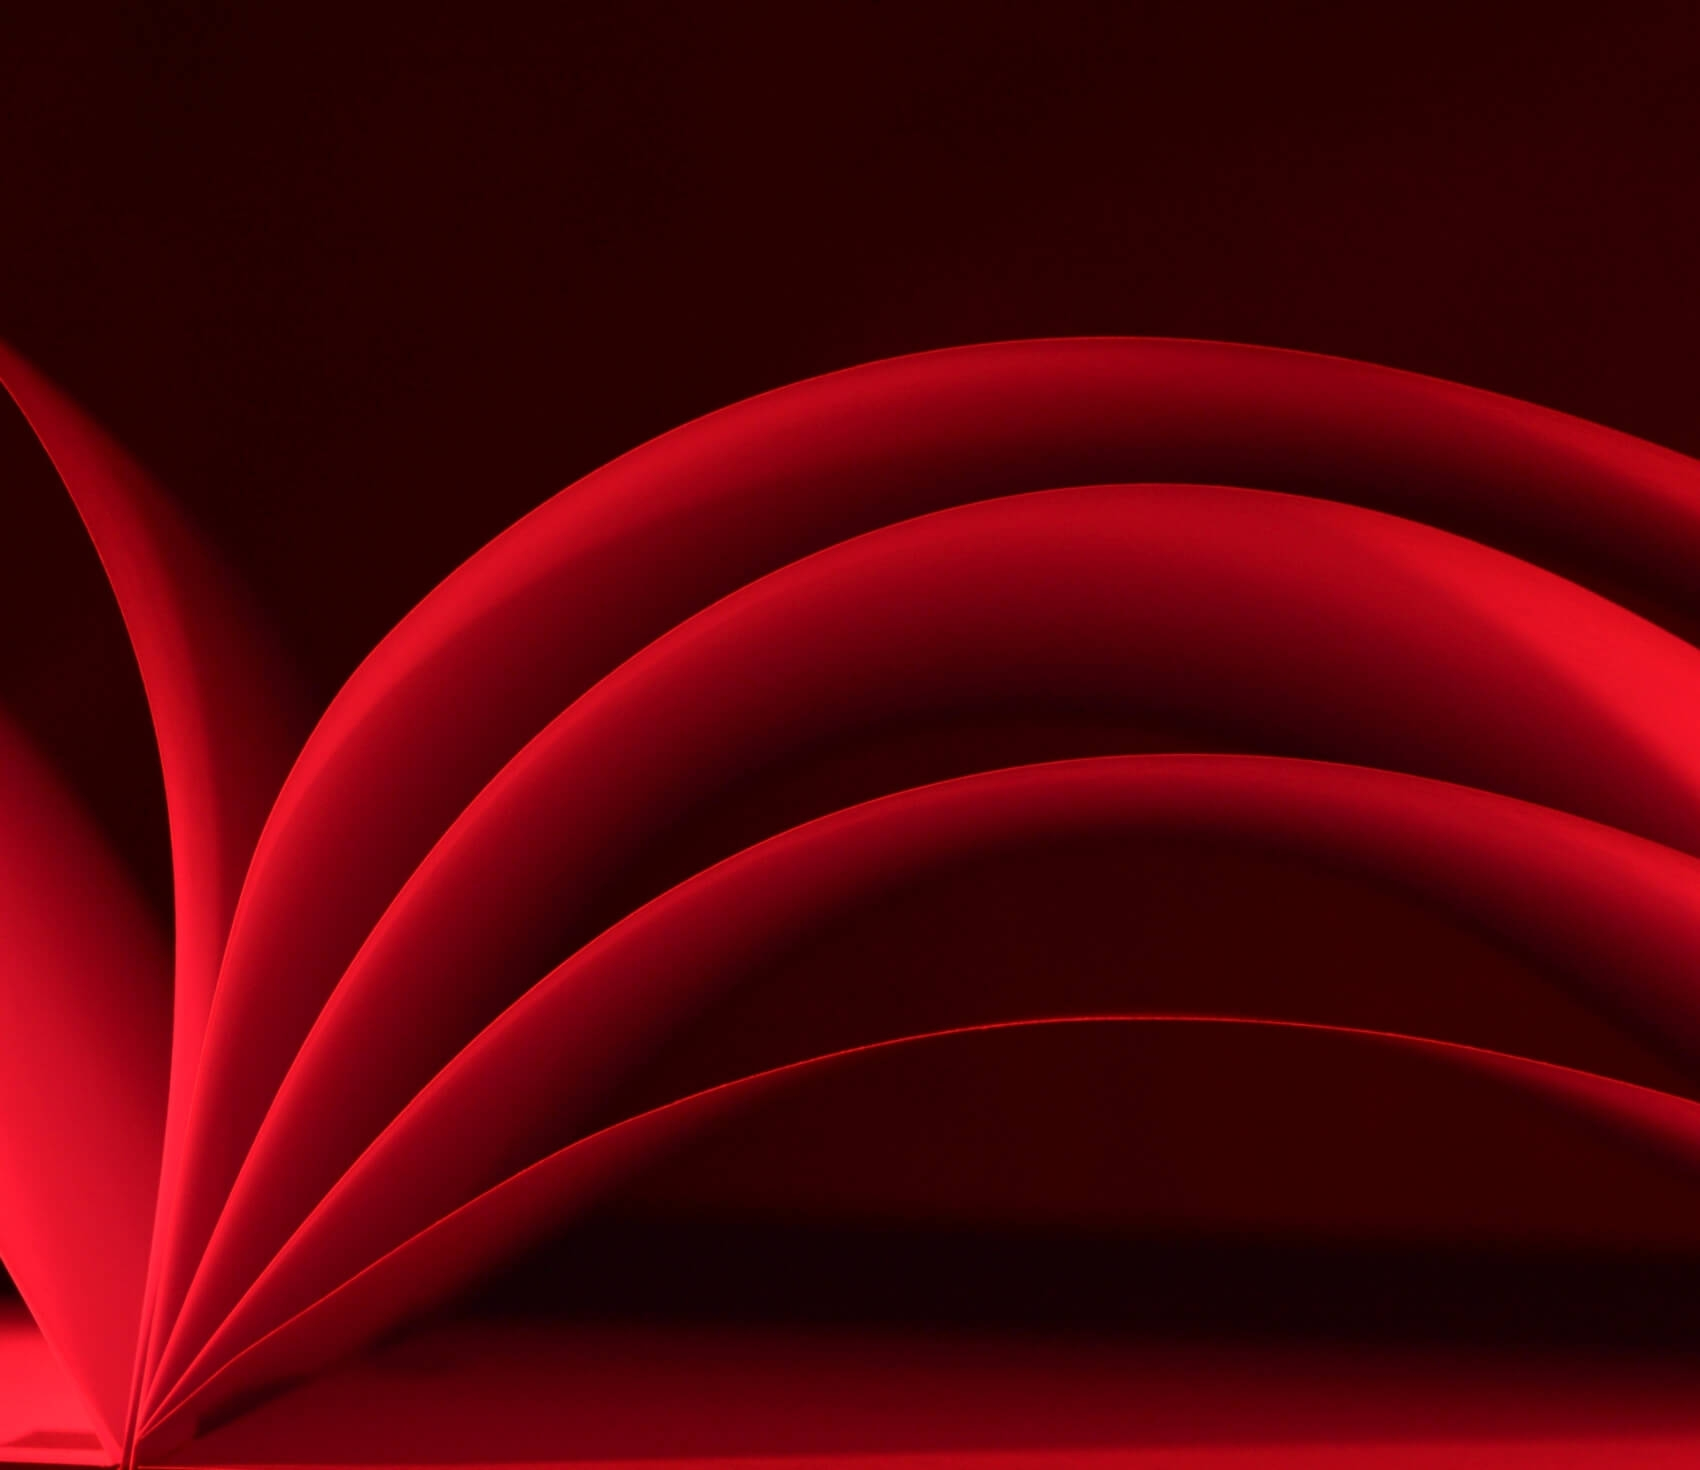 Rotes_Buch_1